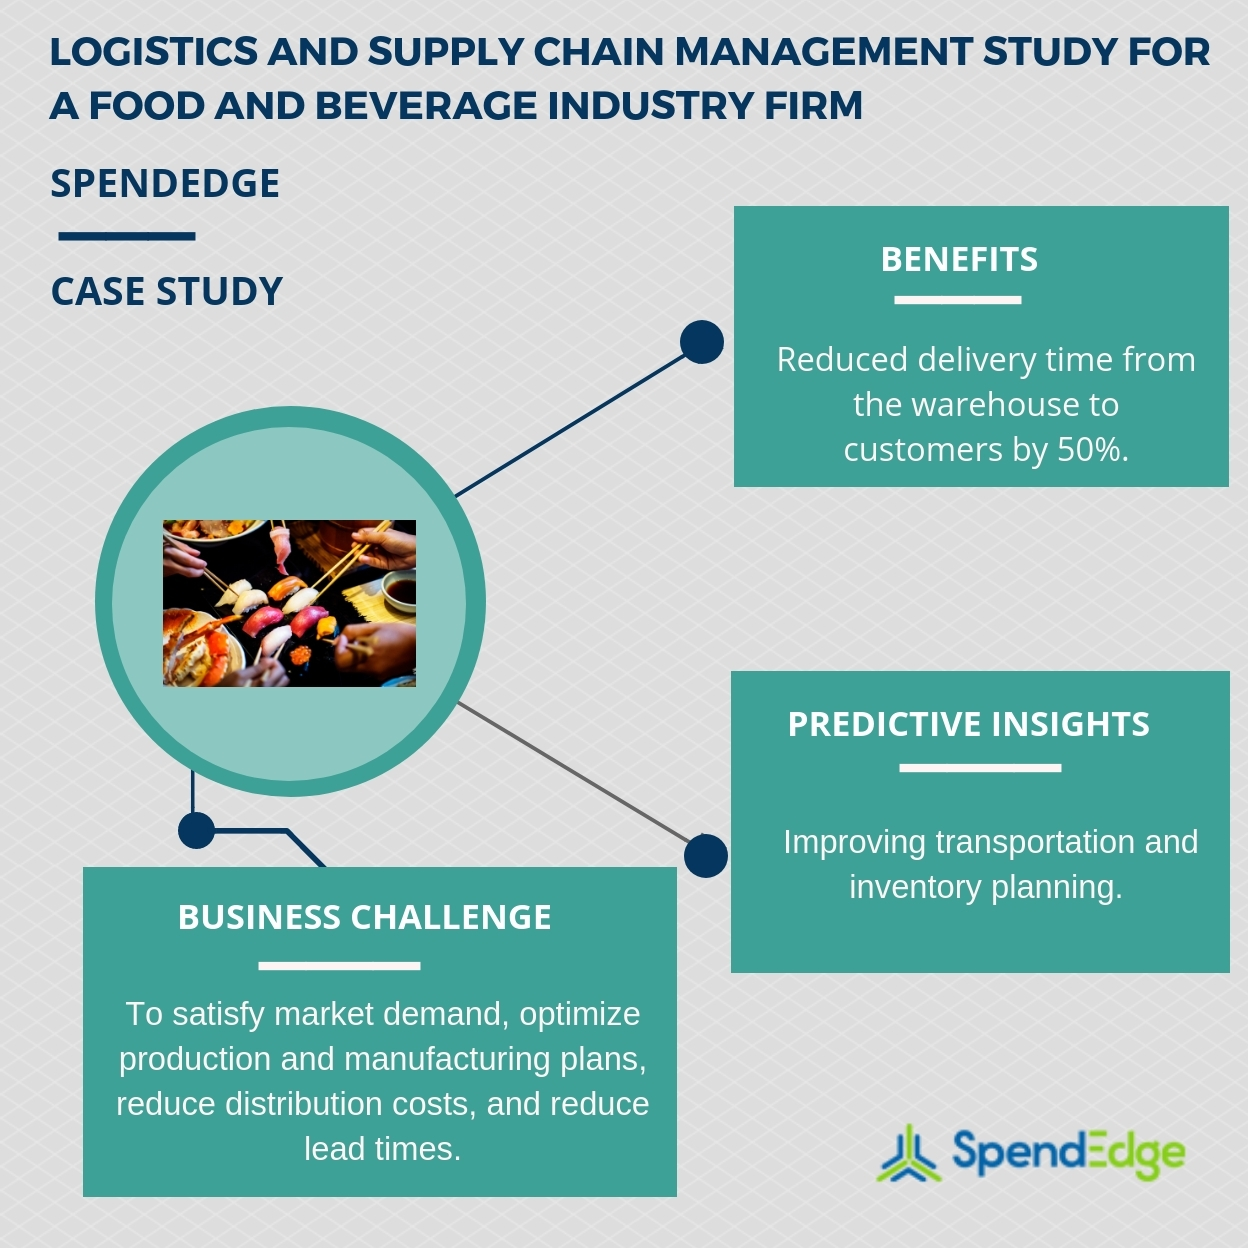 Global Supply Chain Management: Successfully Reducing